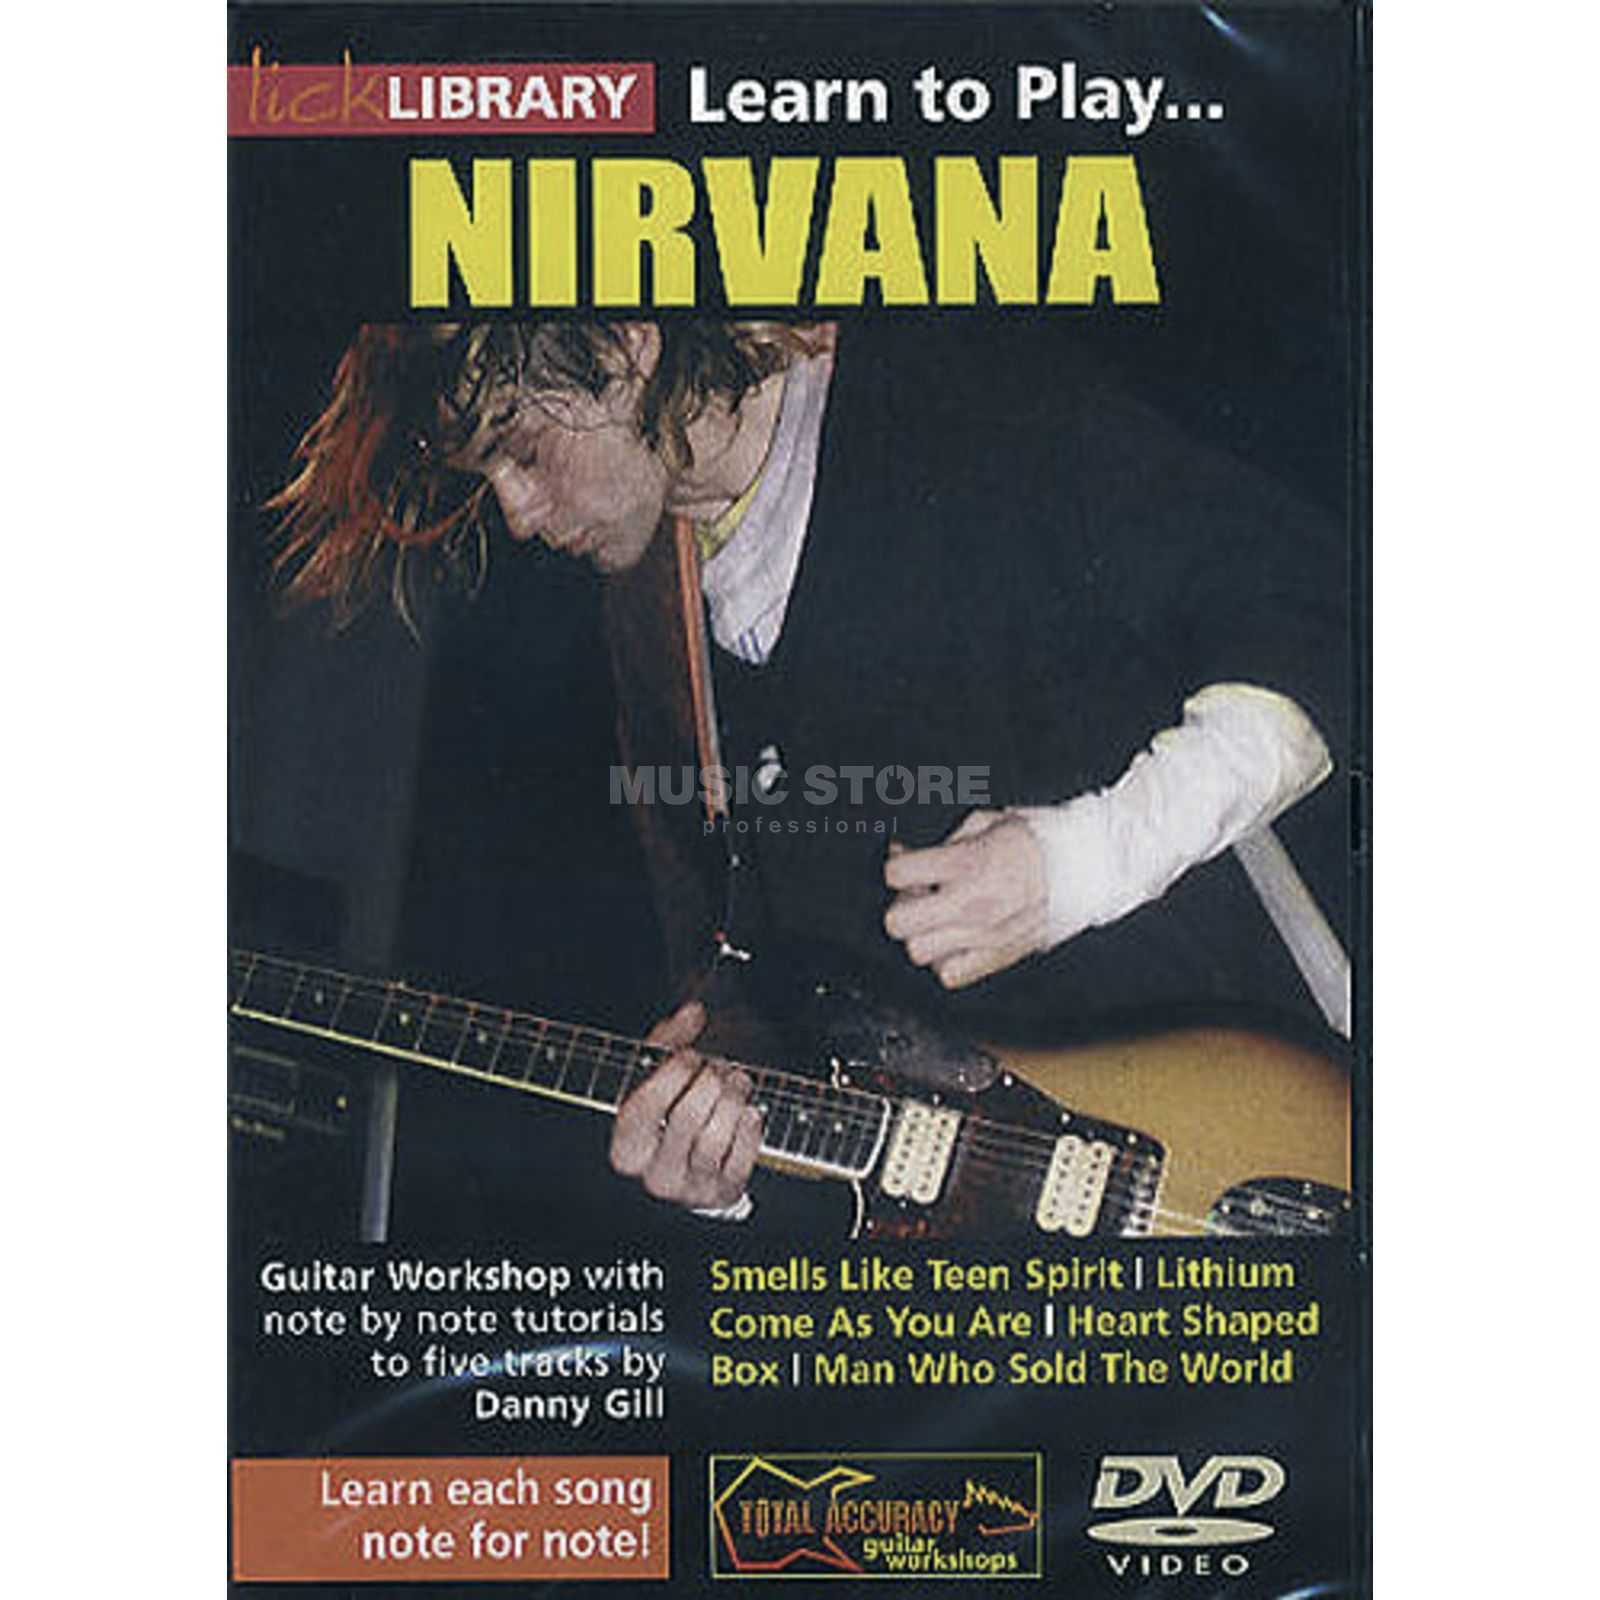 Roadrock International Lick Library: Learn To Play Nirvana DVD Produktbild